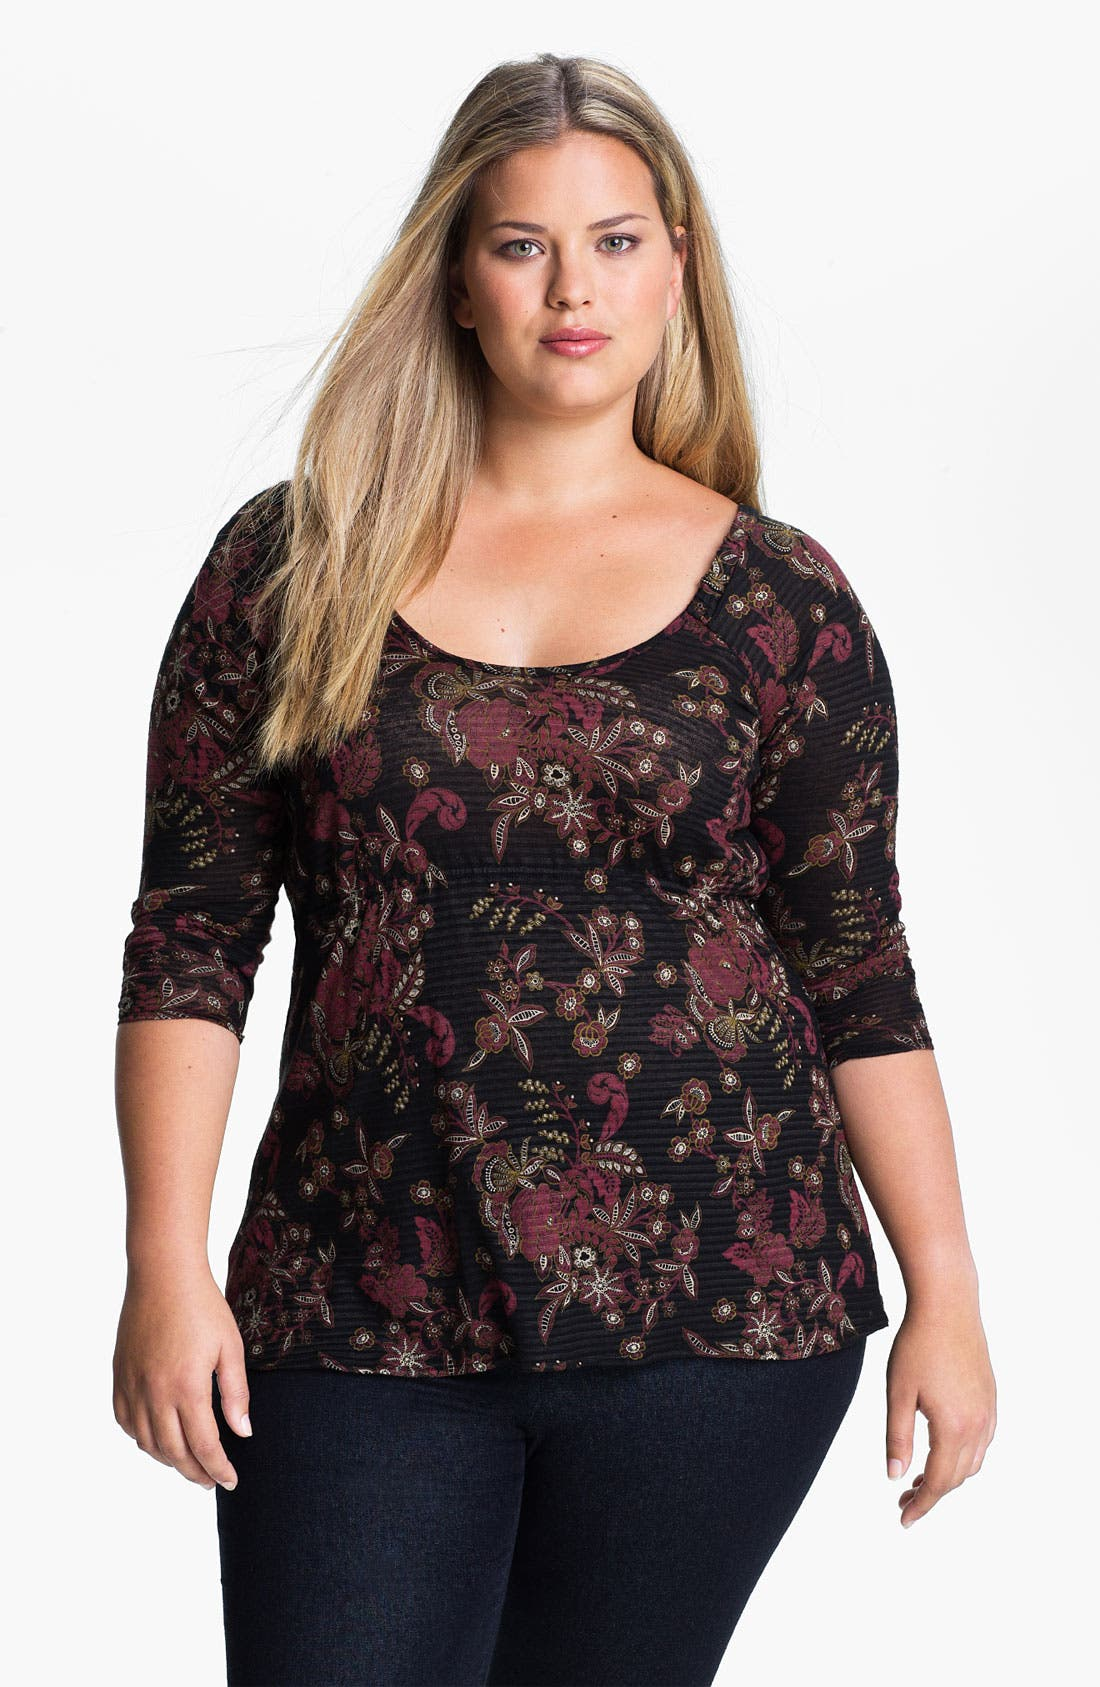 Alternate Image 1 Selected - Lucky Brand 'Lace Shadows Hera' Top (Plus)